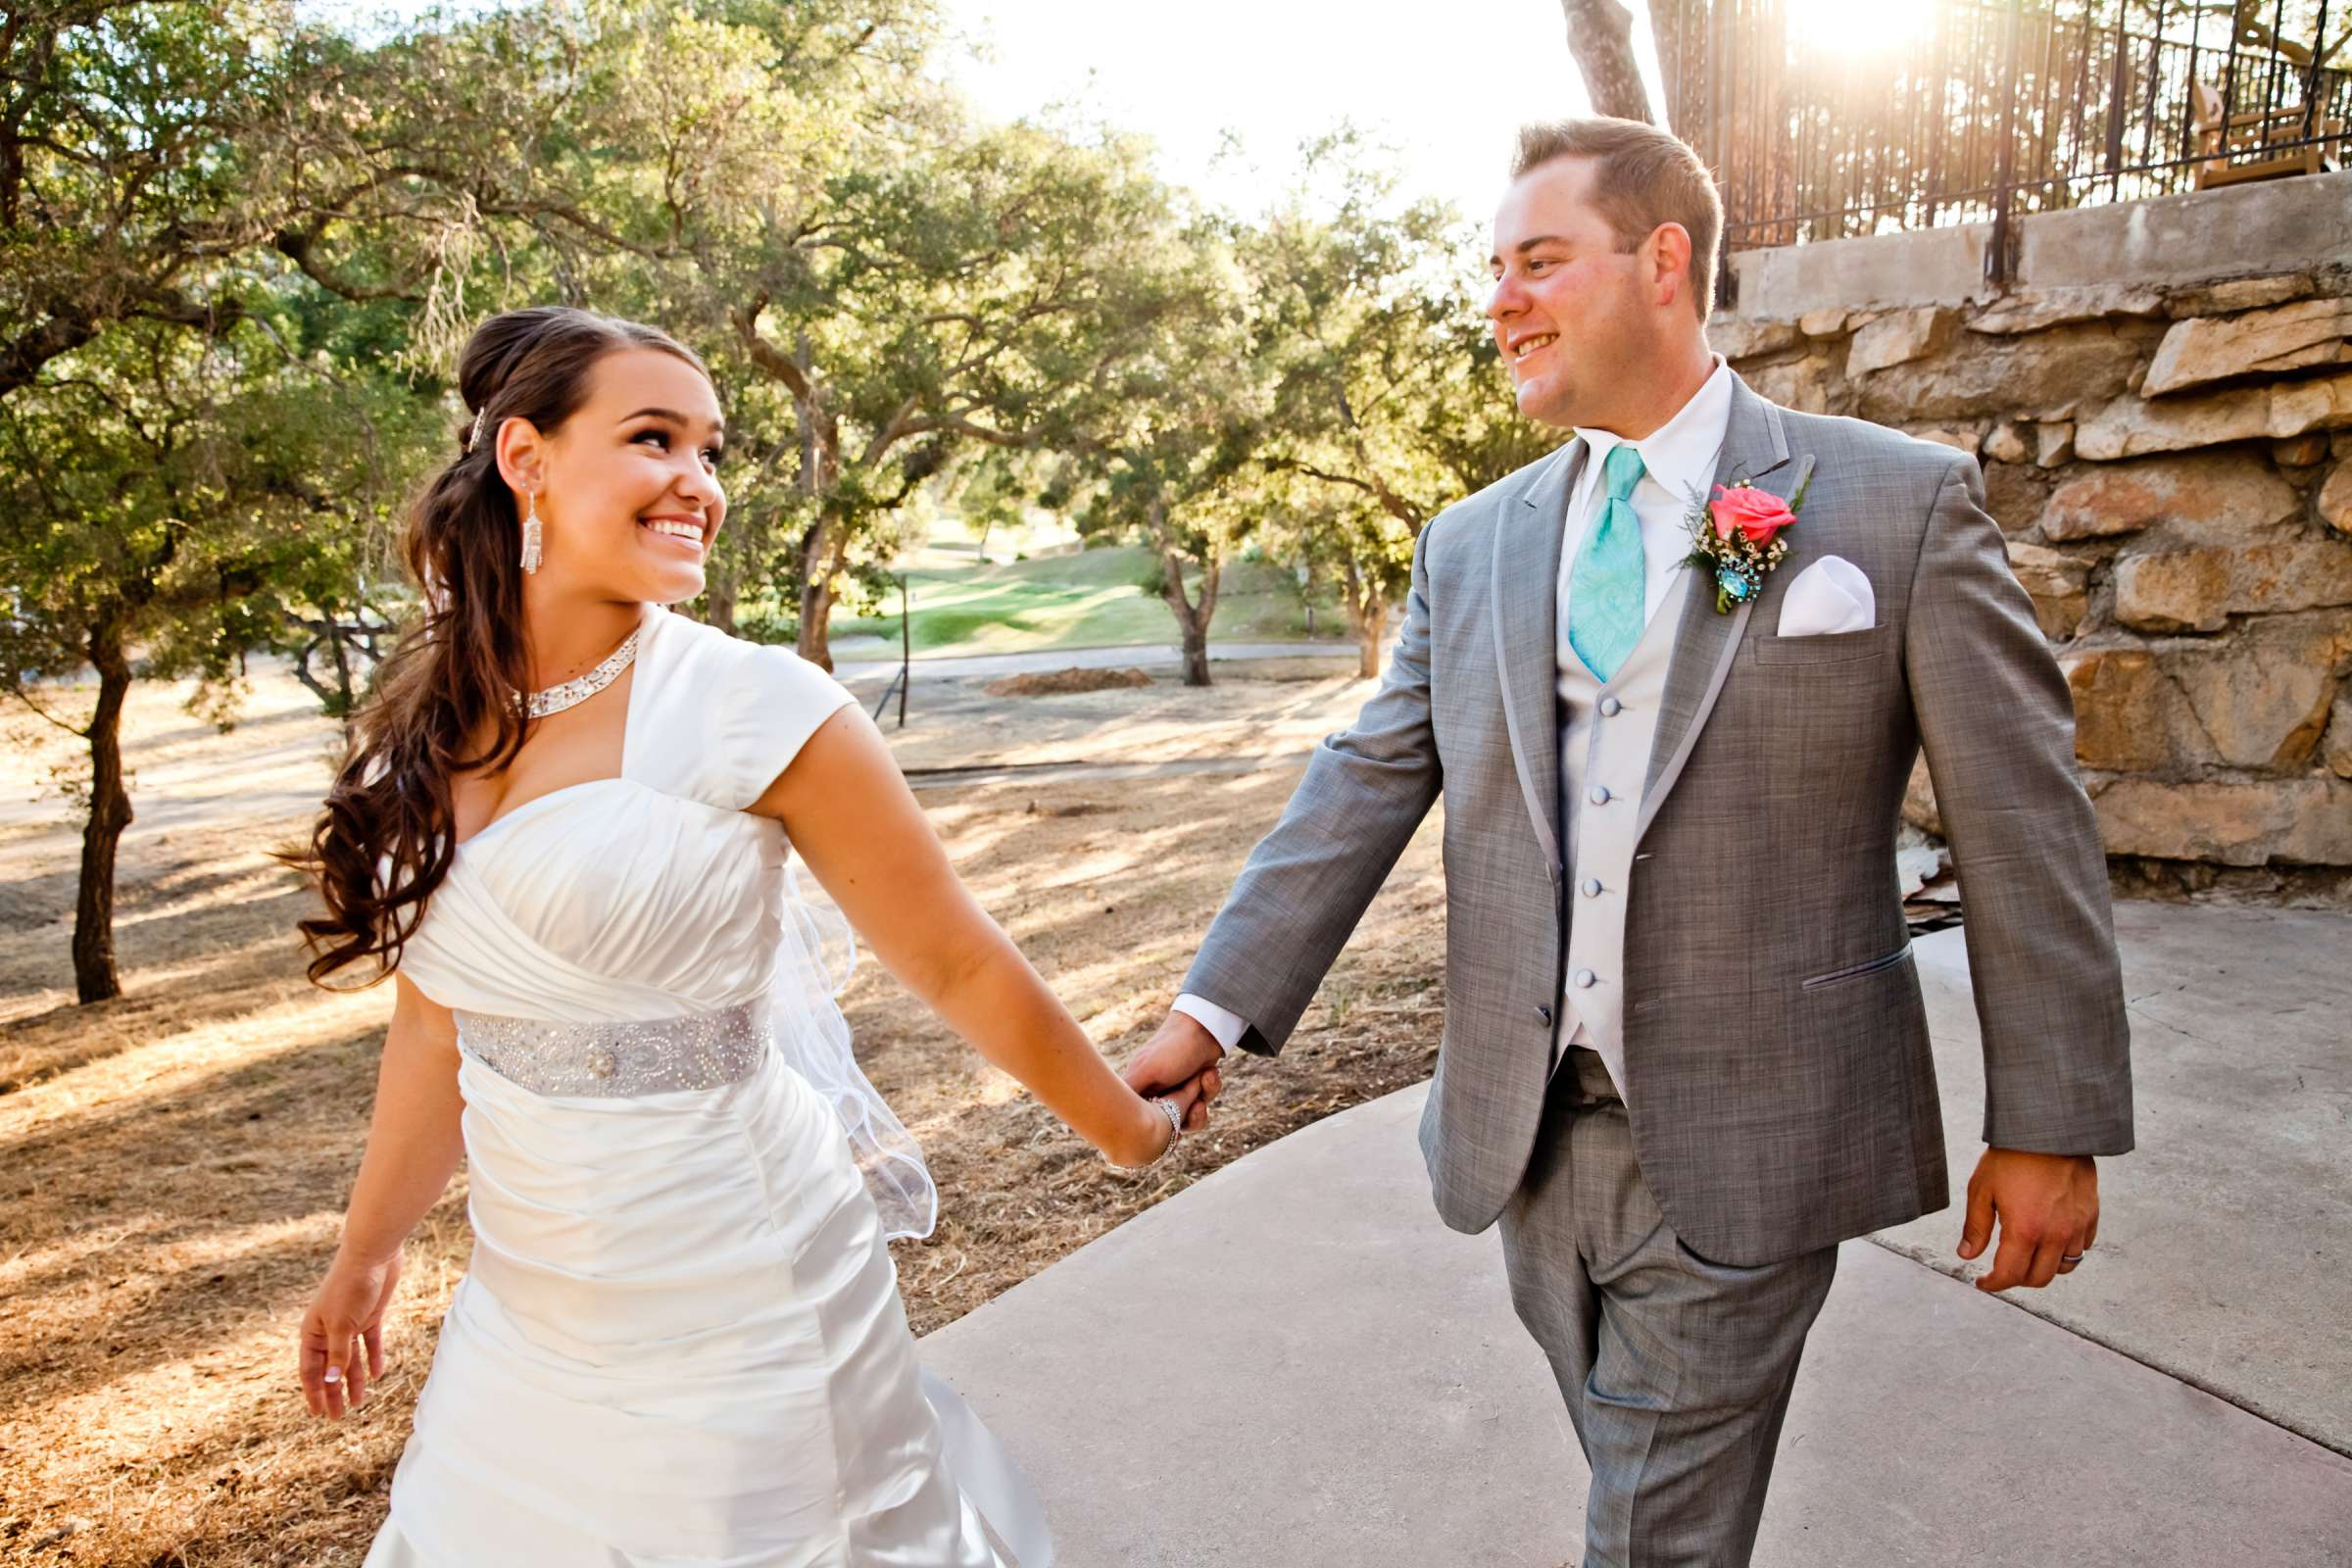 Mt Woodson Castle Wedding, Krista and Donald Wedding Photo #344682 by True Photography